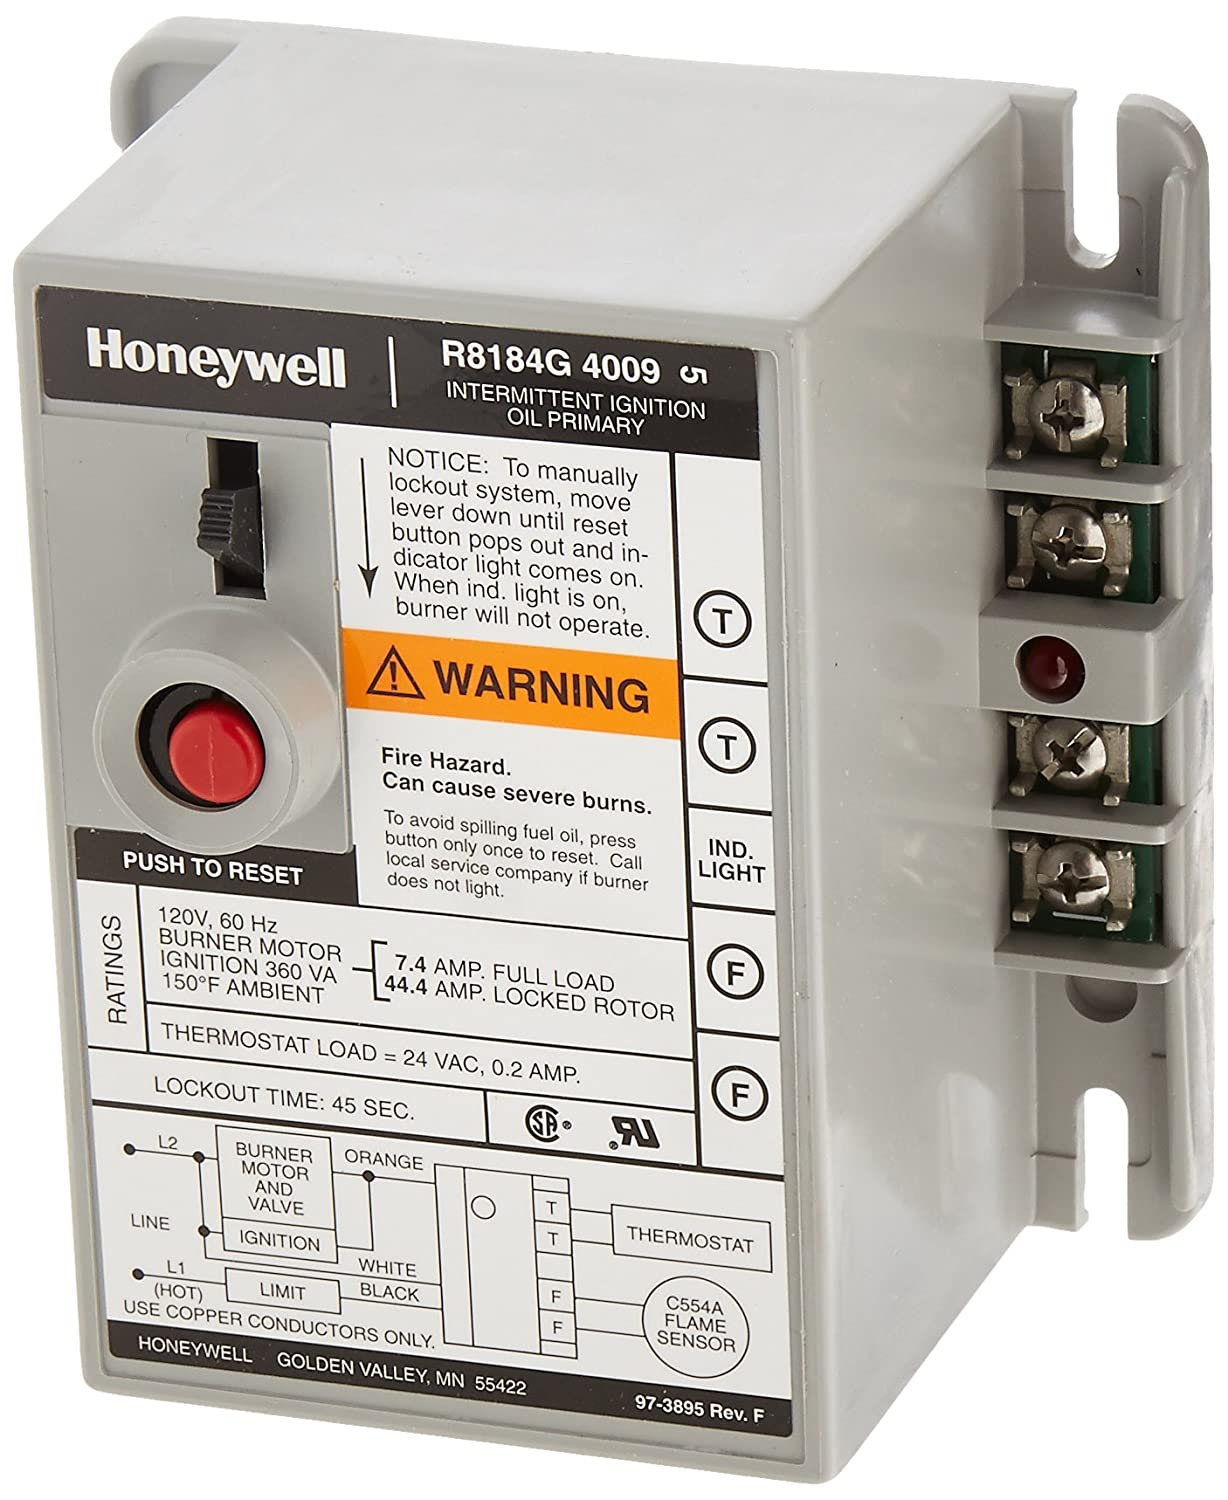 Honeywell R7284 Wiring Diagram 30 Images For Oil Boiler Sl1500 R8184g4009 International Burner Control Household At Cita